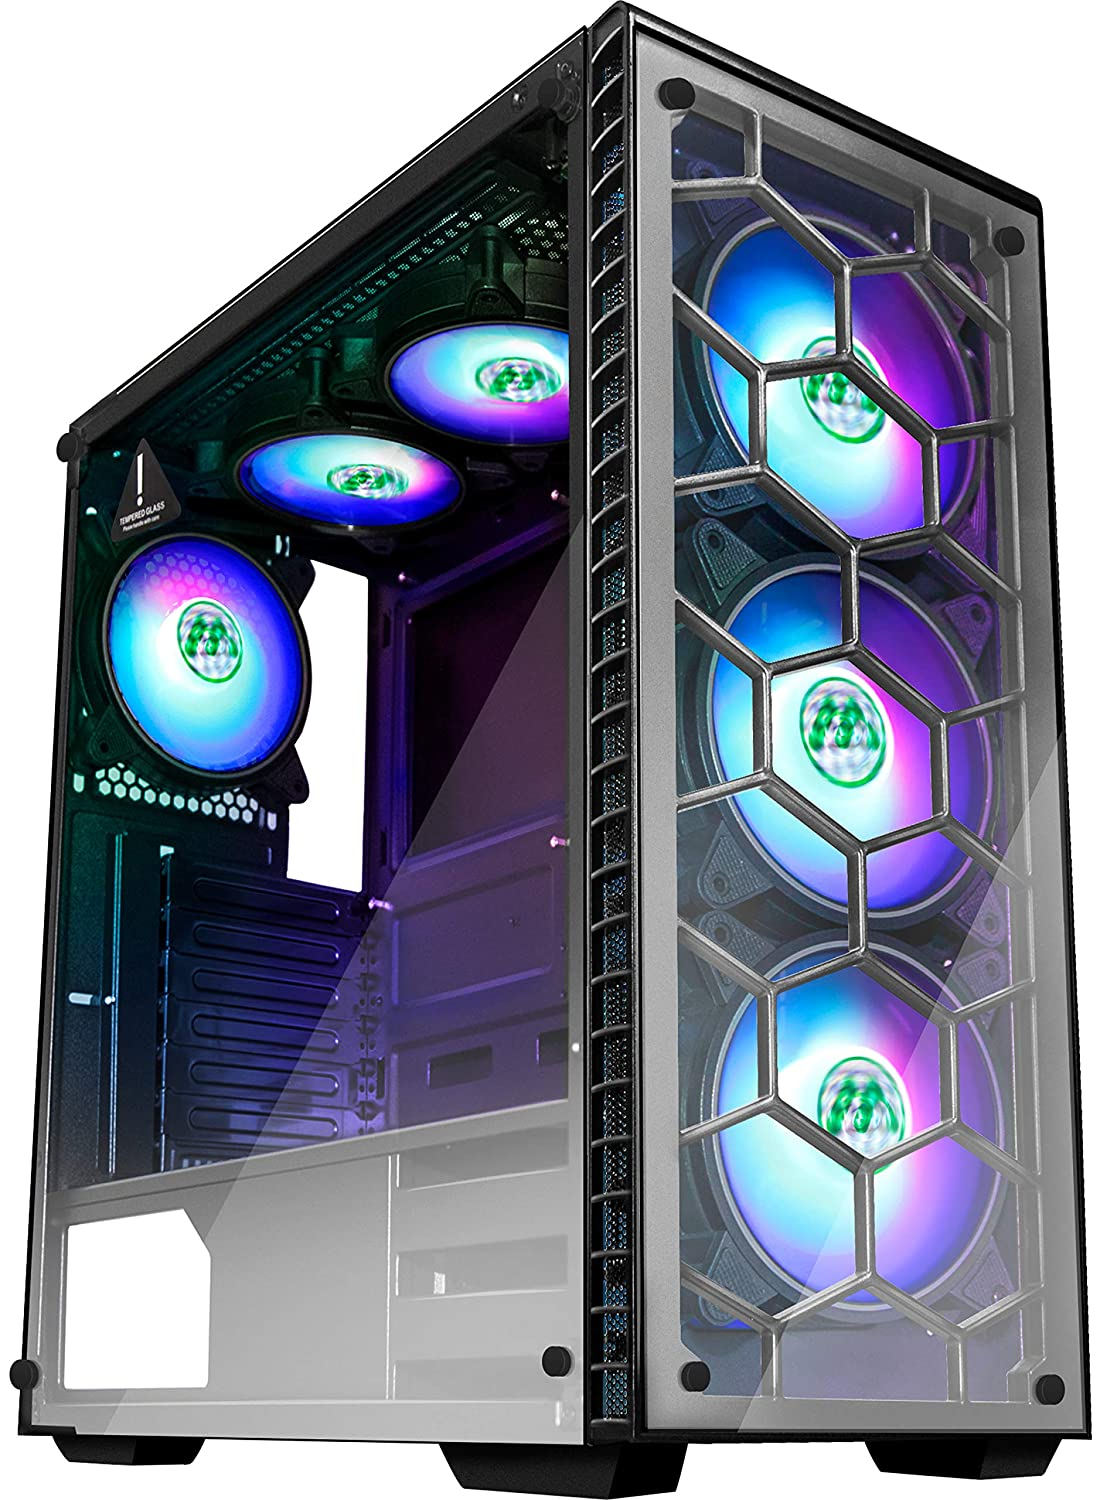 MUSETEX ATX Mid Tower Gaming Computer Case 6 RGB LED Fans 2 Translucent Tempered Glass Panels USB 3.0 Port,Cable Management//Airflow Gaming Style Window Case 903N6